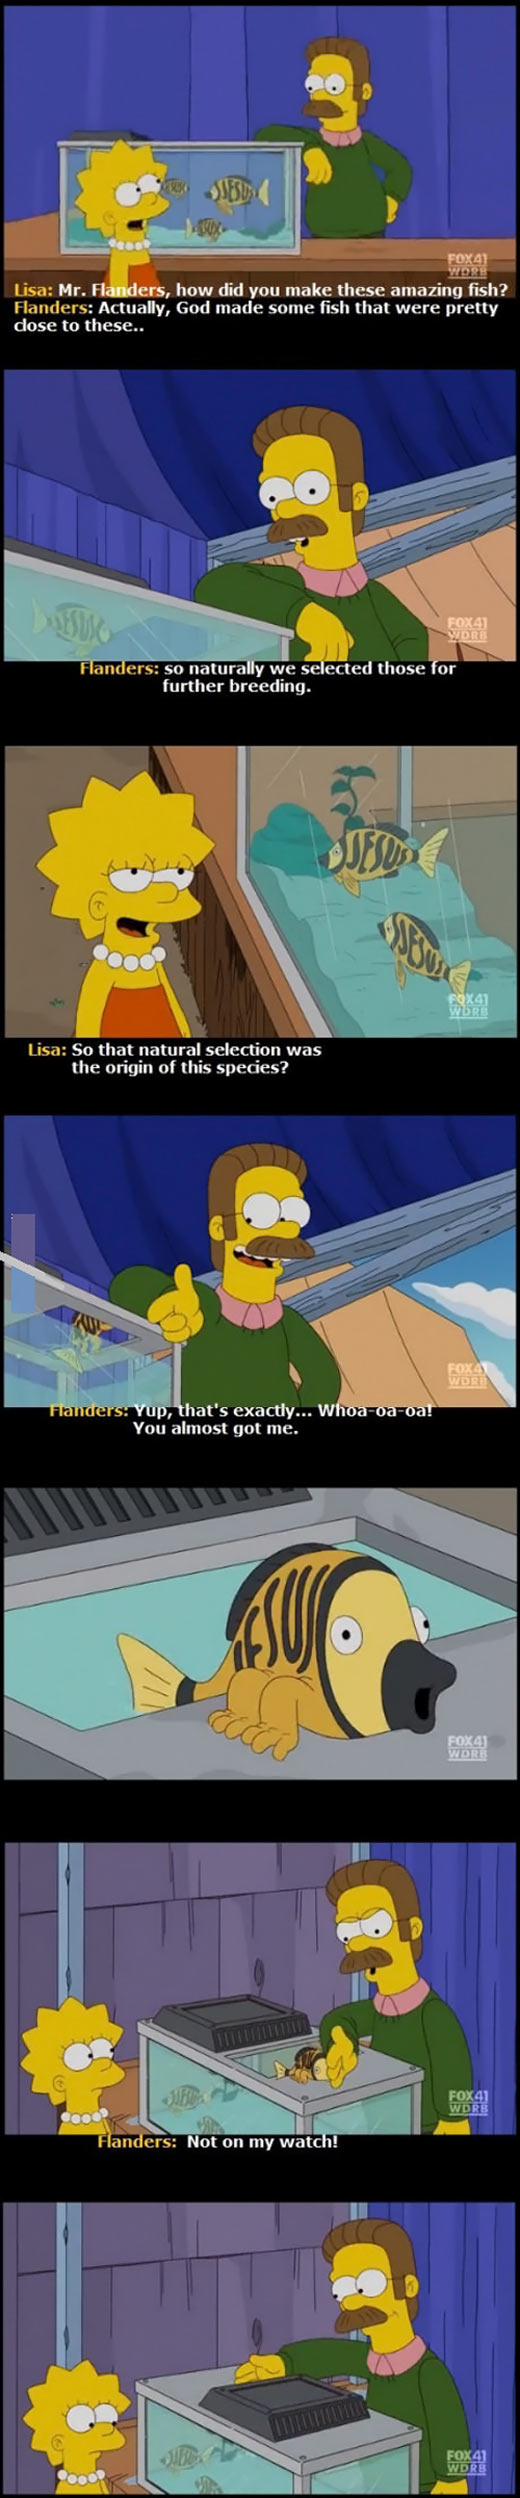 You Almost Got Me, Lisa